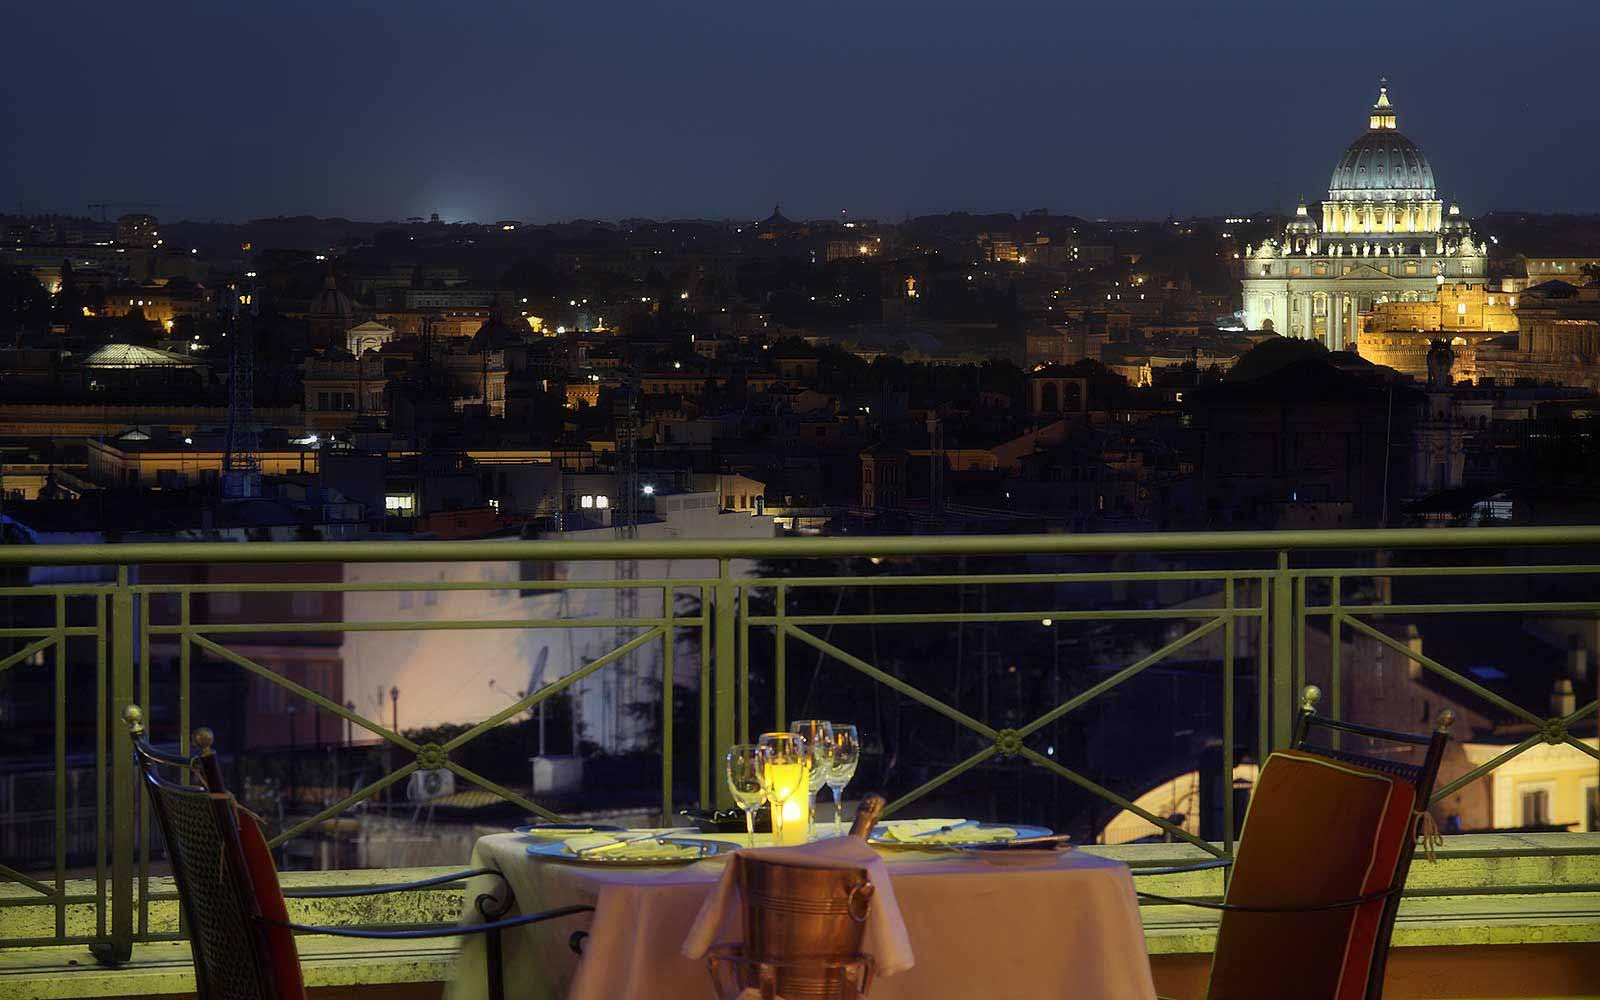 Rooftop restaurant L'Olimpo at Hotel Bernini Bristol with a view of St. Peter's at night